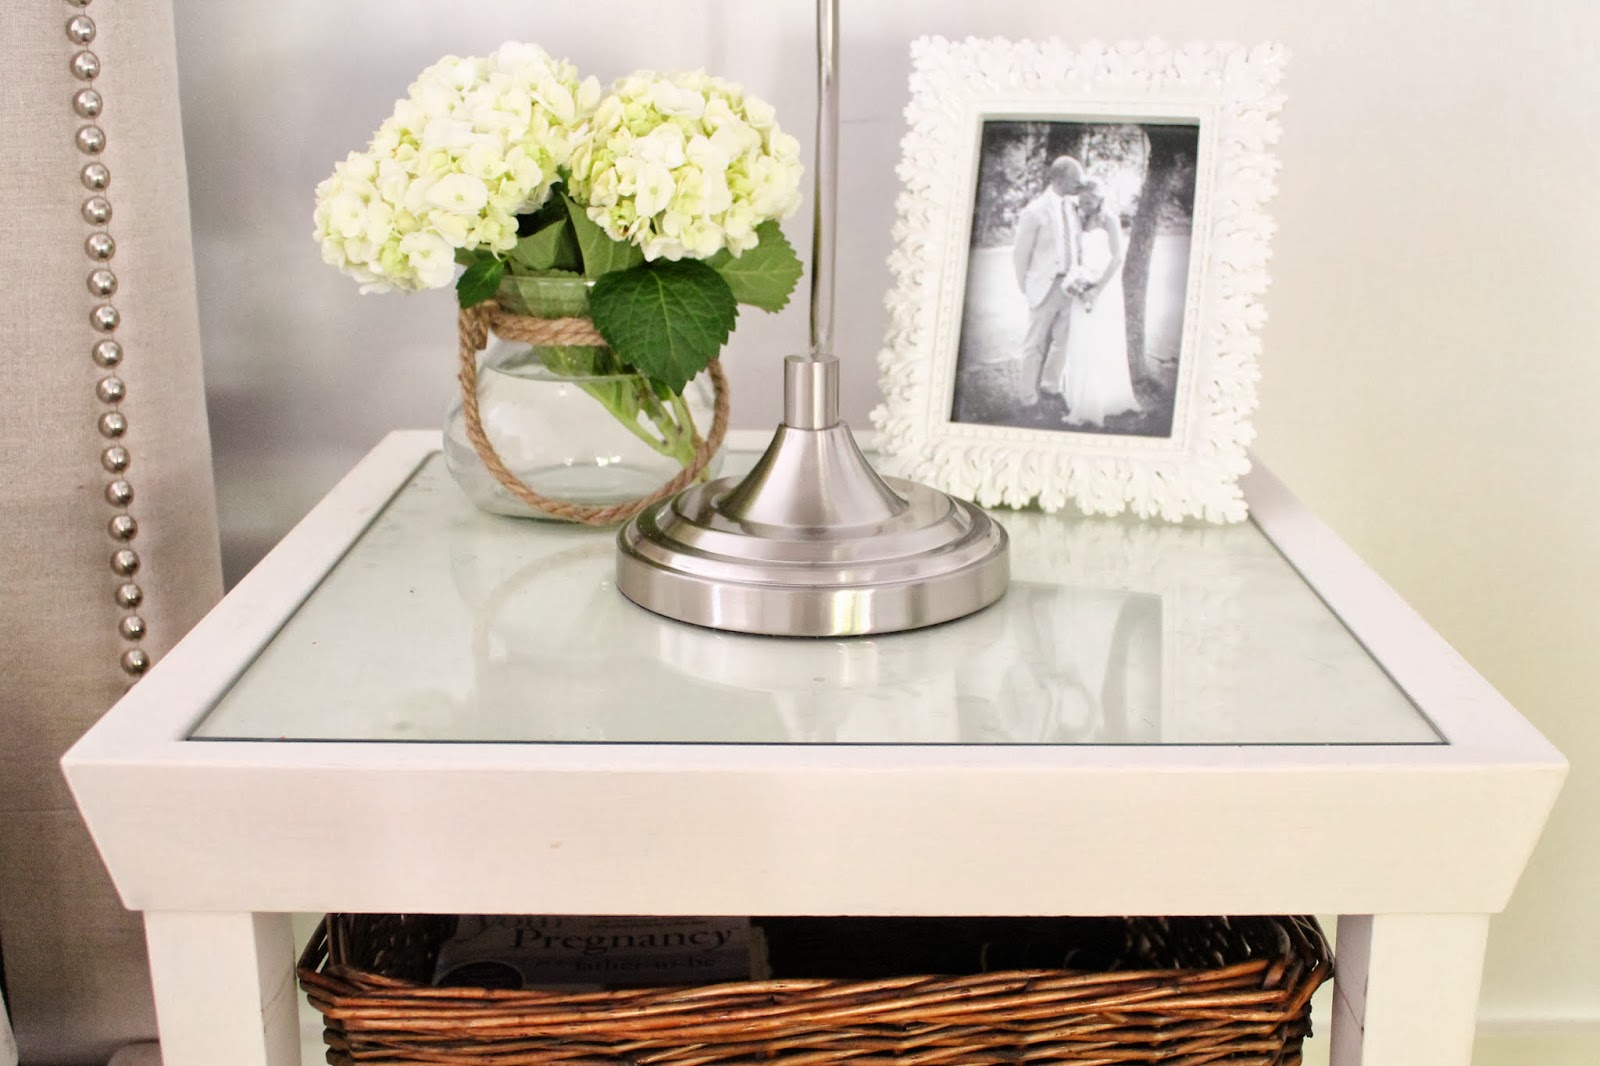 the picket fence projects like new nightstands - the glass top comes off so i plan on putting down fabric underneath it likethese choices